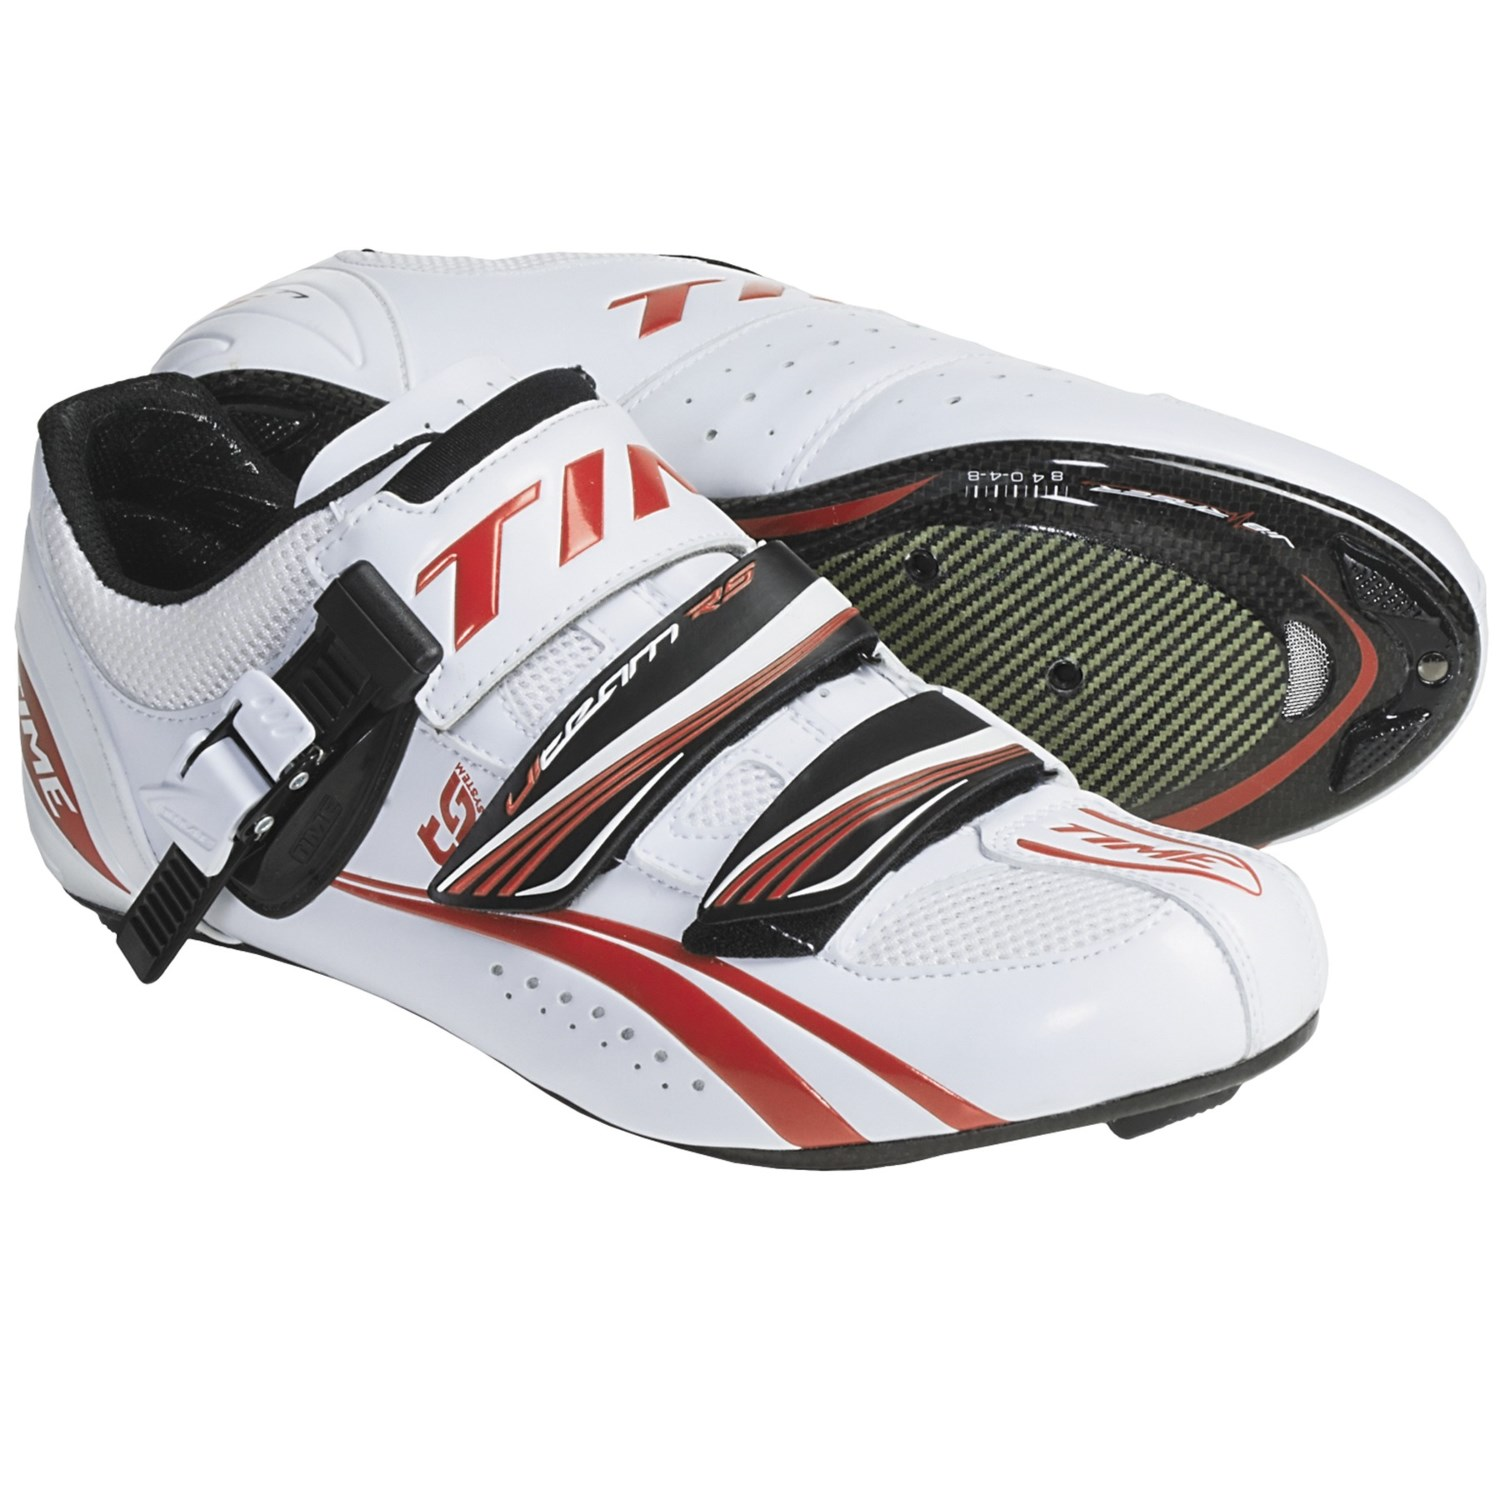 Sport Ulteam RS Carbon Road Cycling Shoes - 3-Hole (For Men and Women